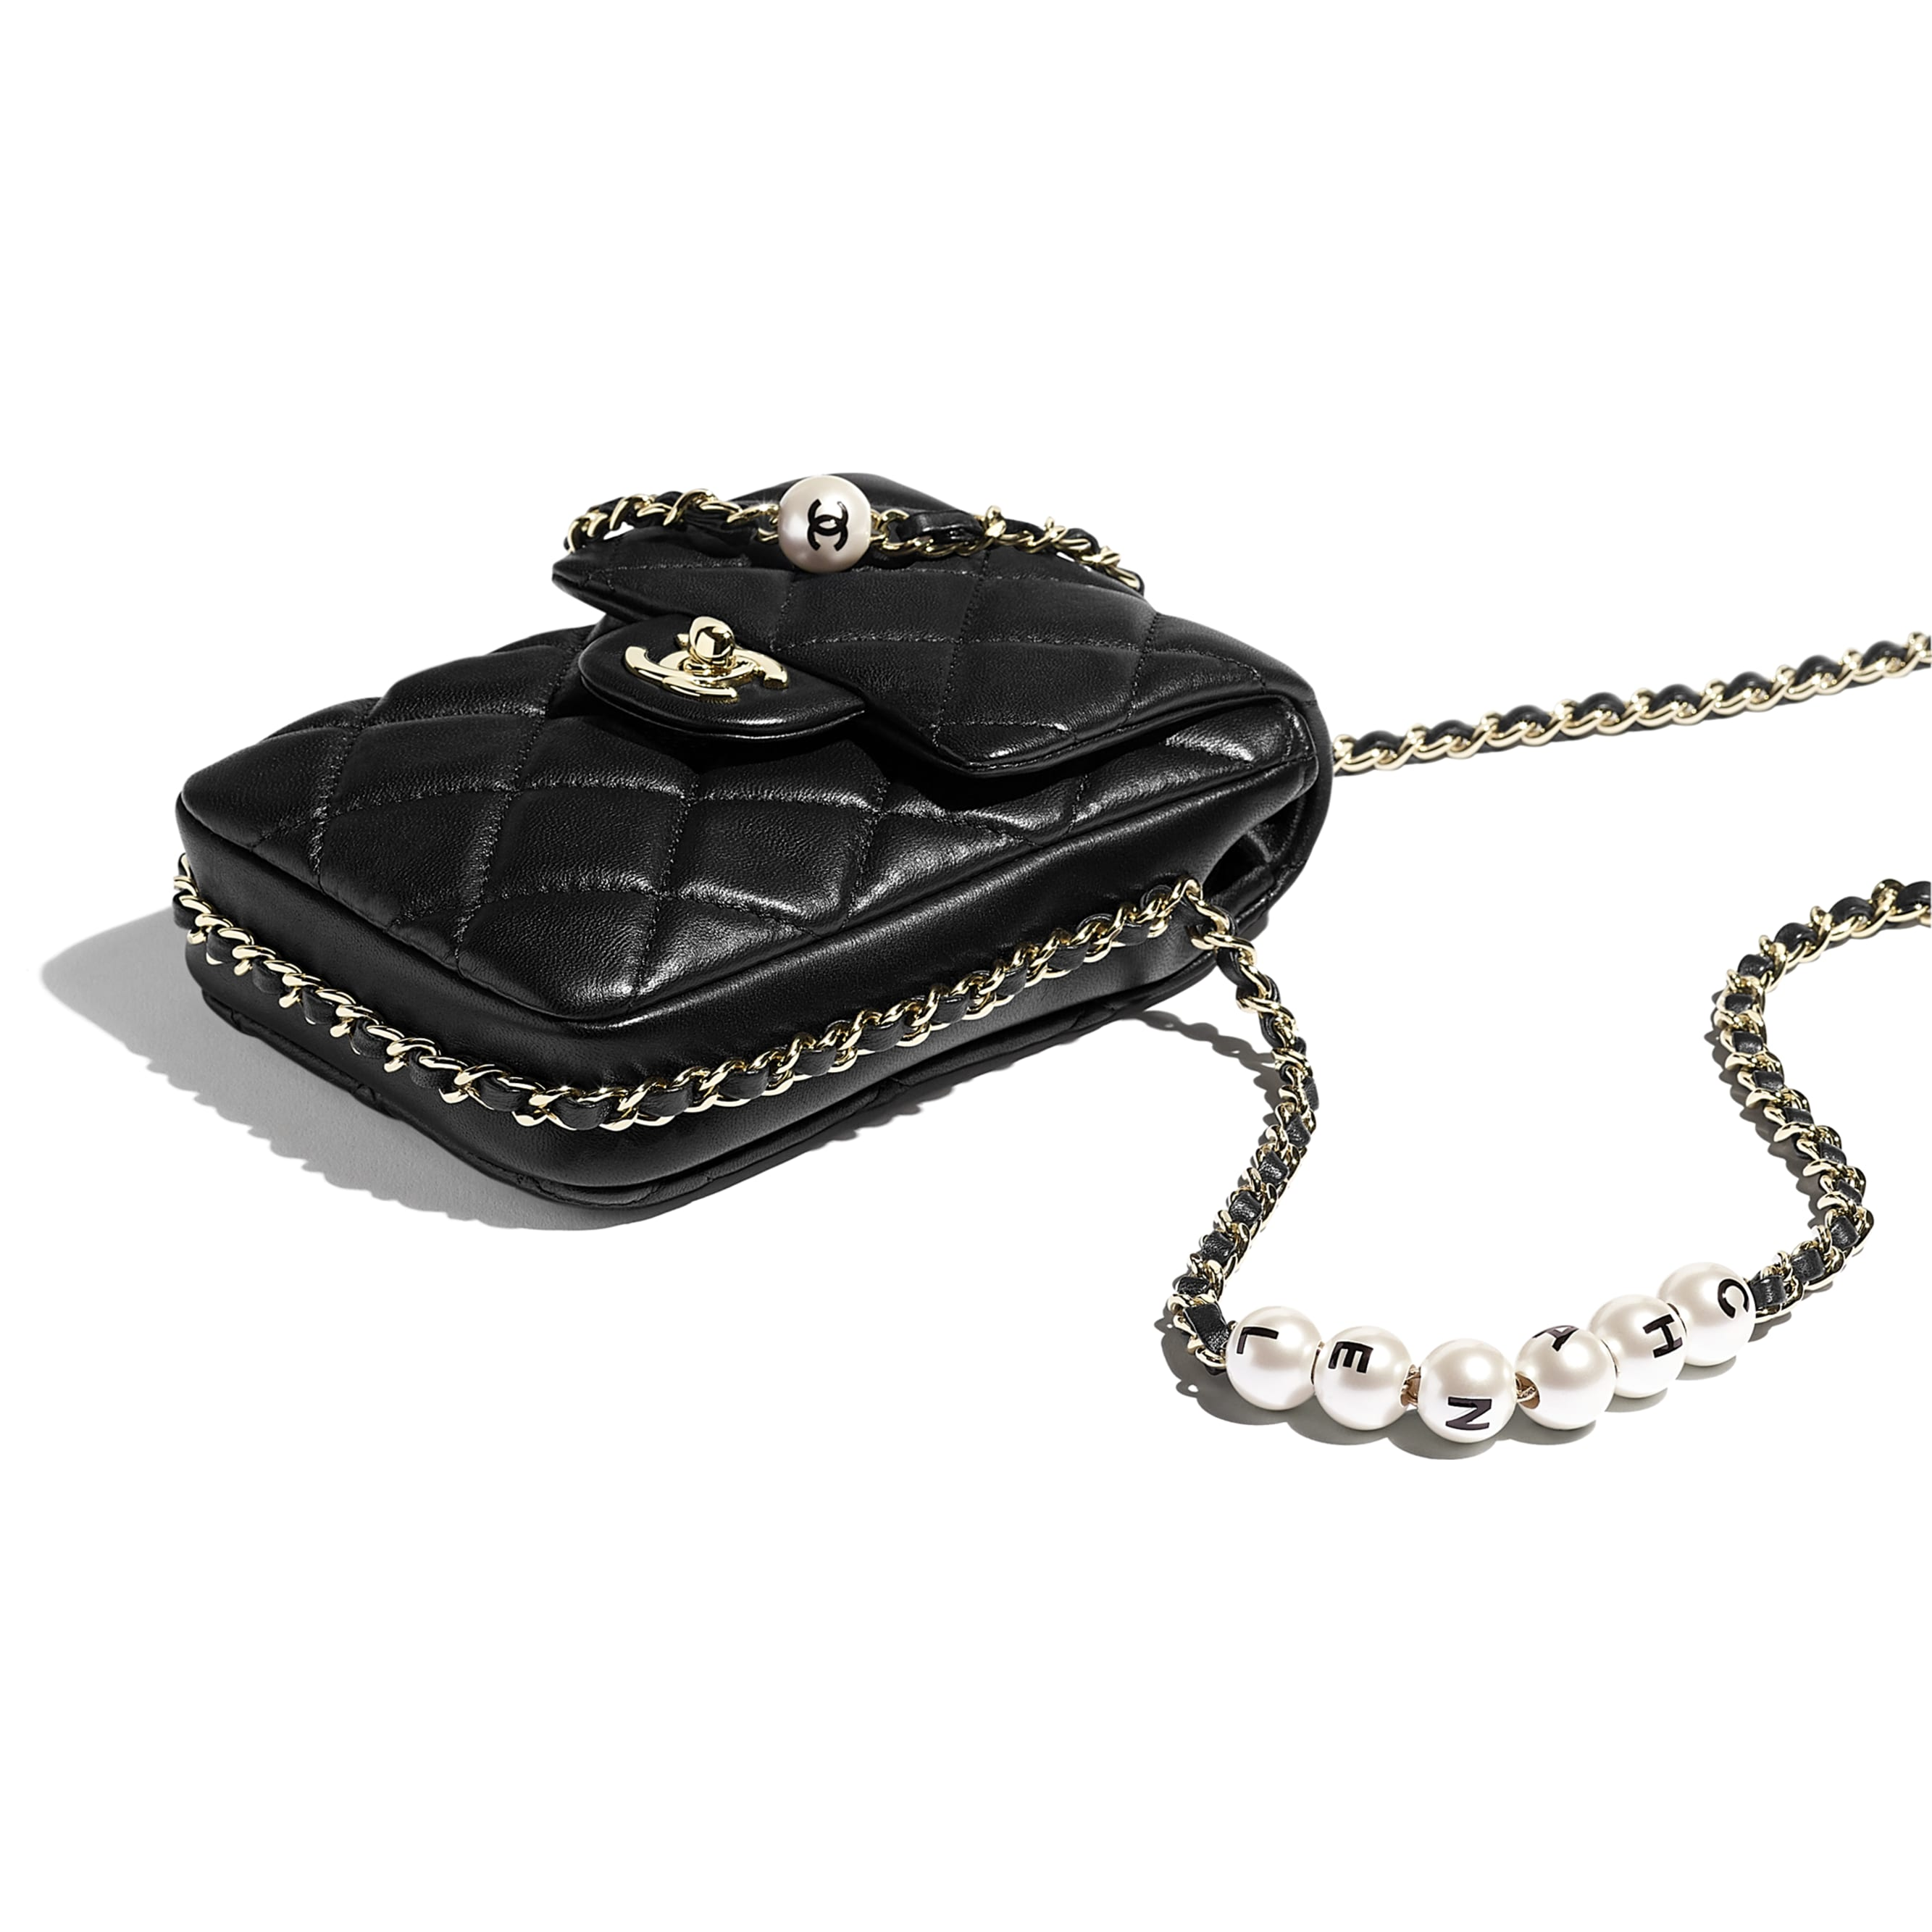 Small Flap Bag - Black - Lambskin, Imitation Pearls & Gold-Tone Metal - CHANEL - Extra view - see standard sized version